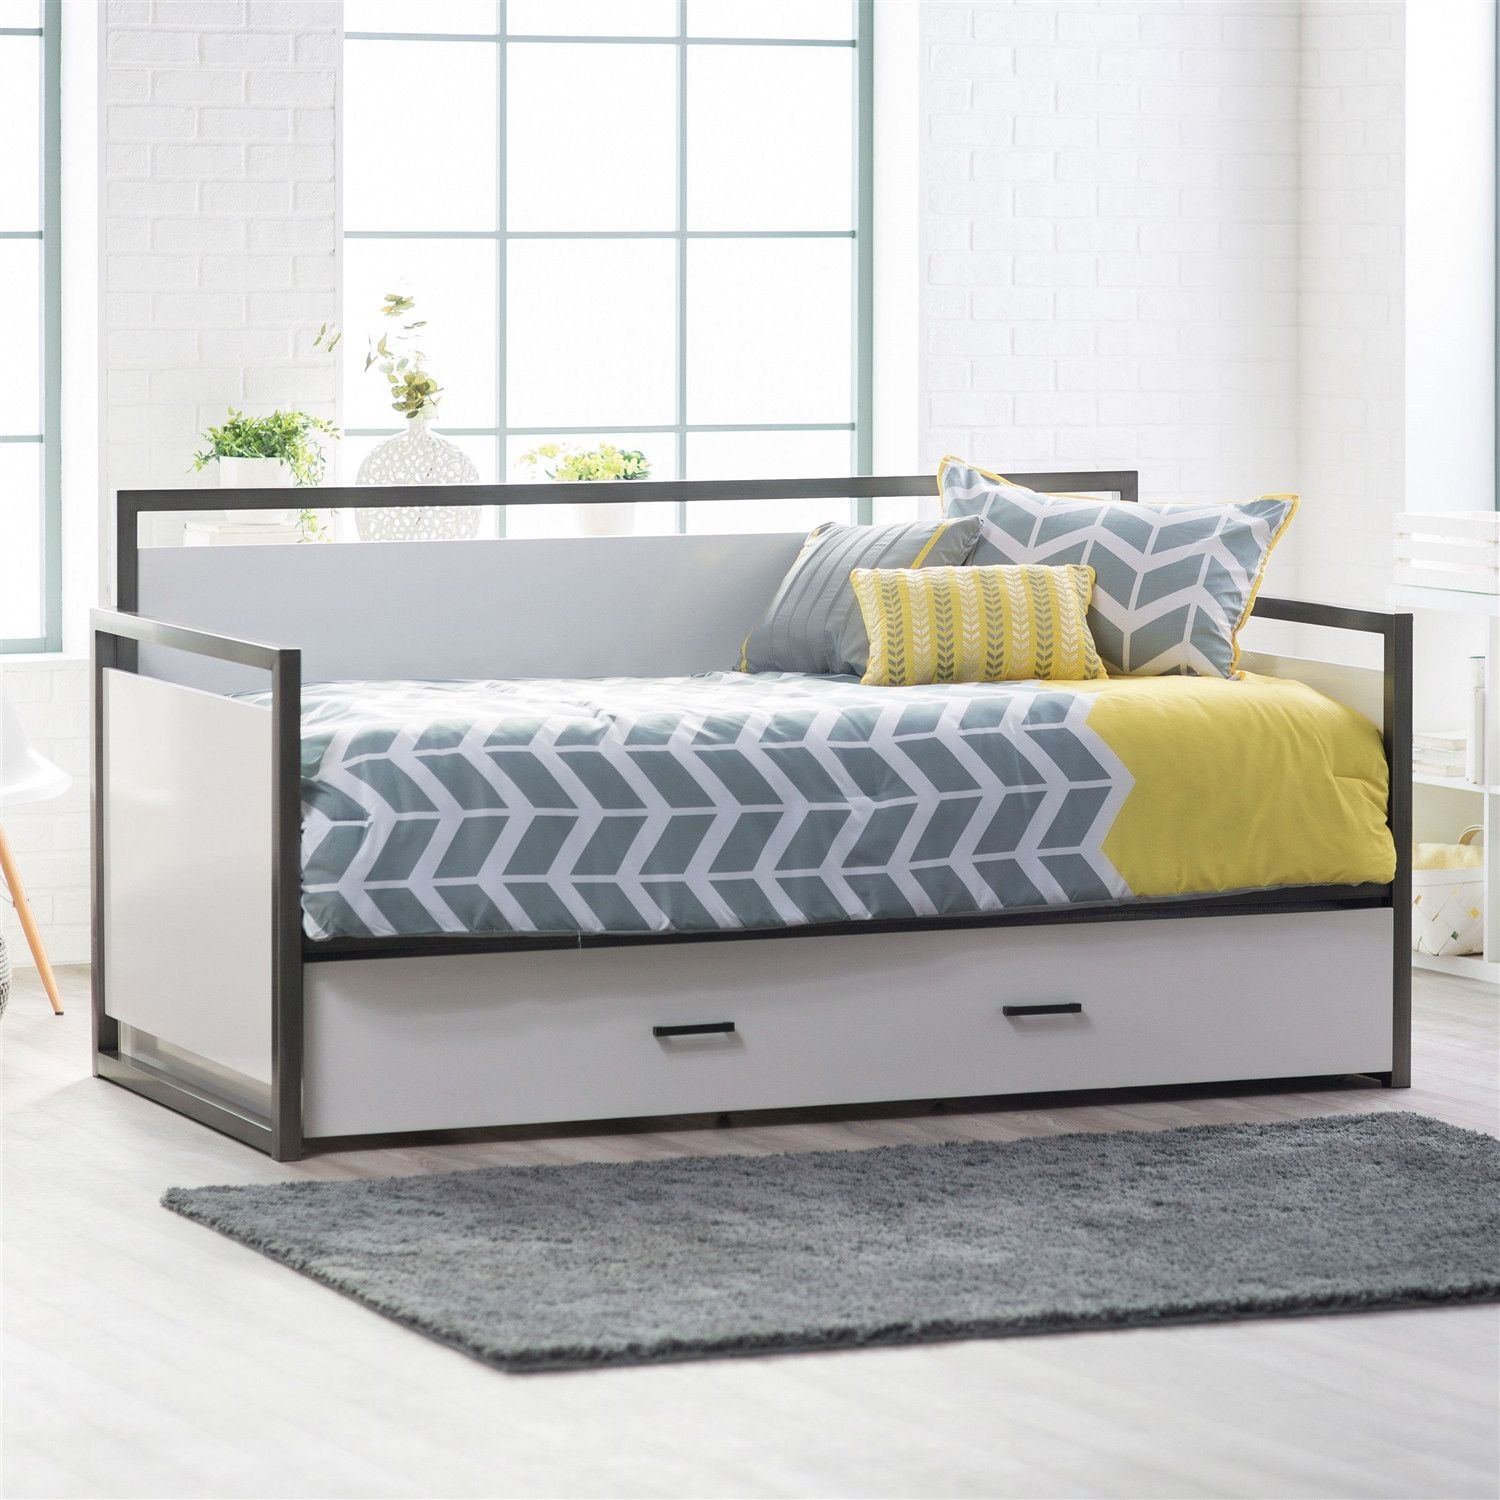 Pull Out Trundle Bed Frame